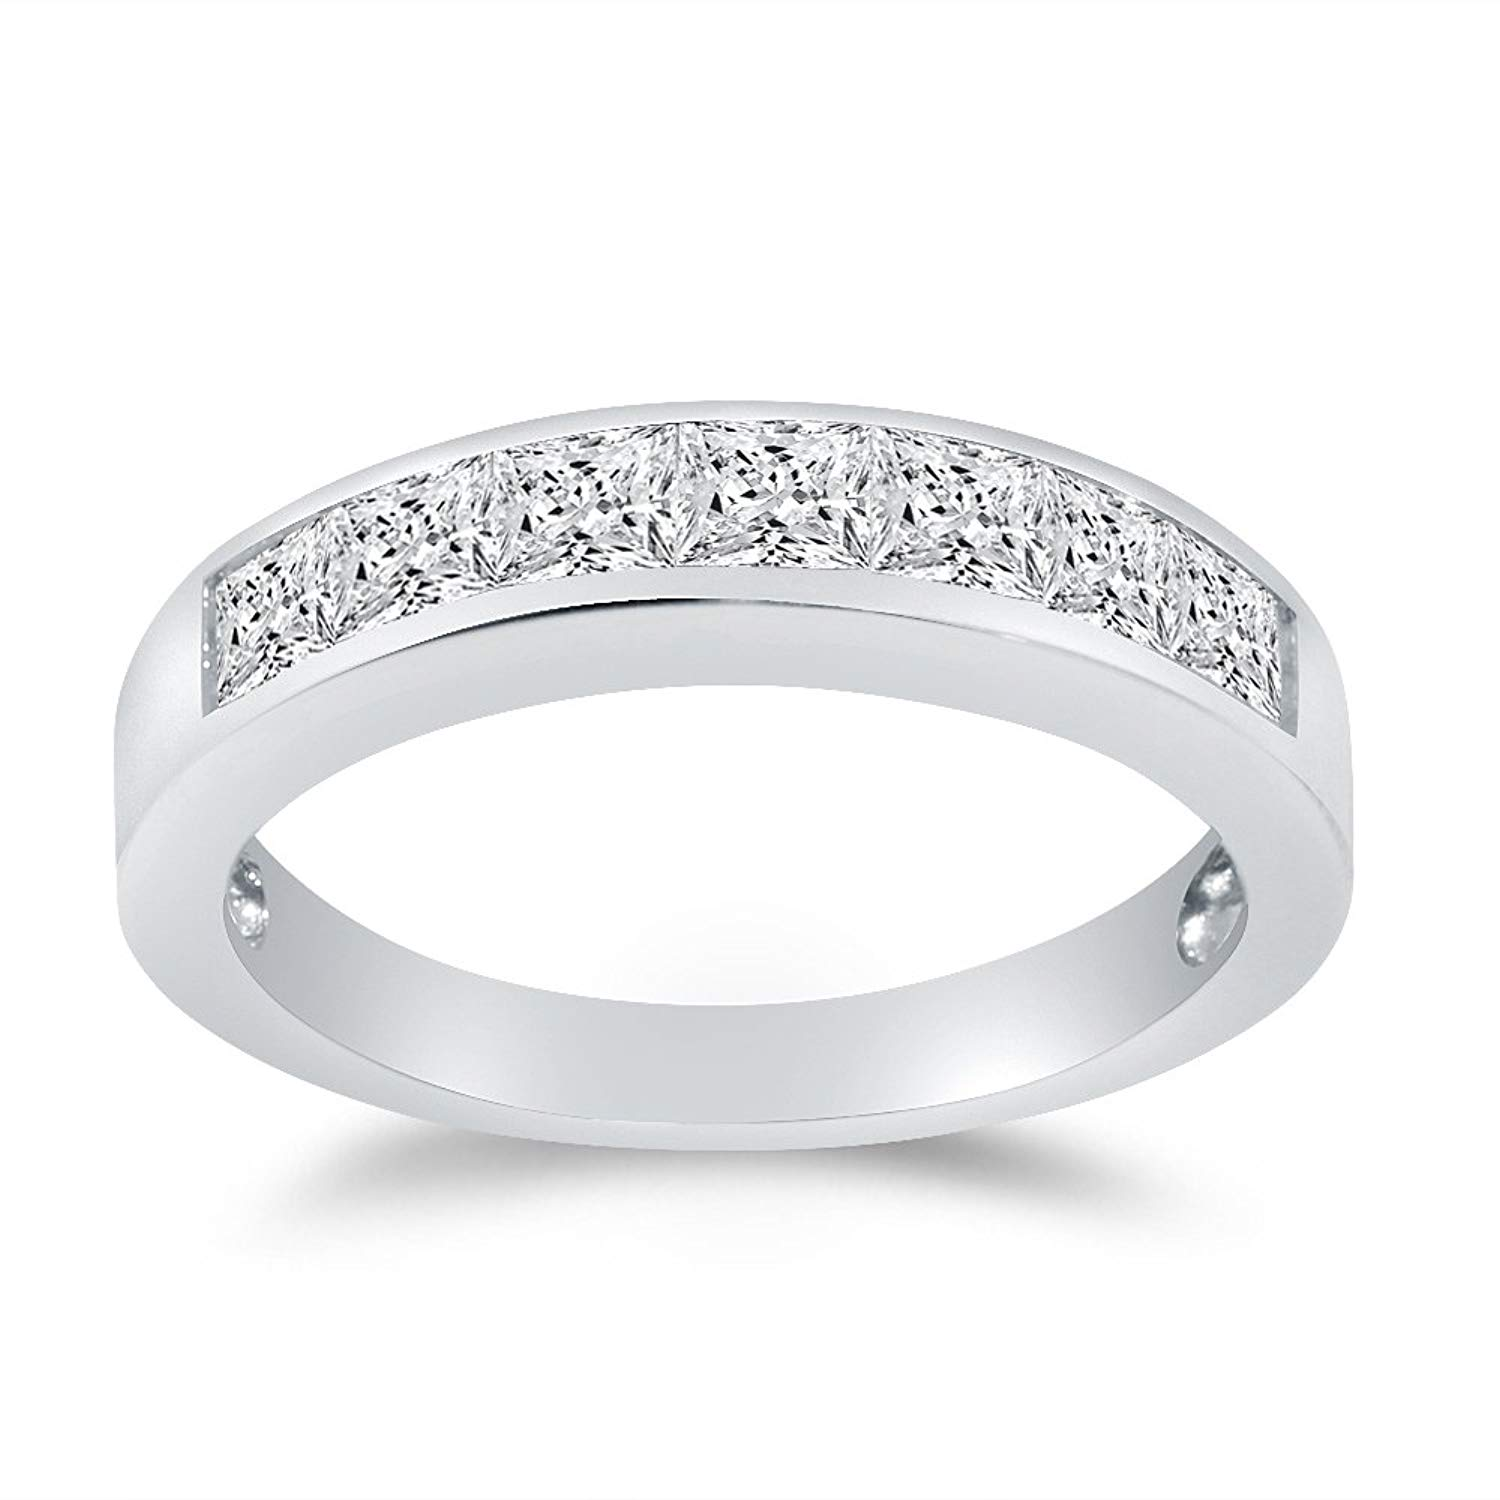 Solid 925 Sterling Silver 4mm Princess Cut Anniversary Ring Wedding Band Highest Quality CZ Cubic Zirconia 1.0cttw.